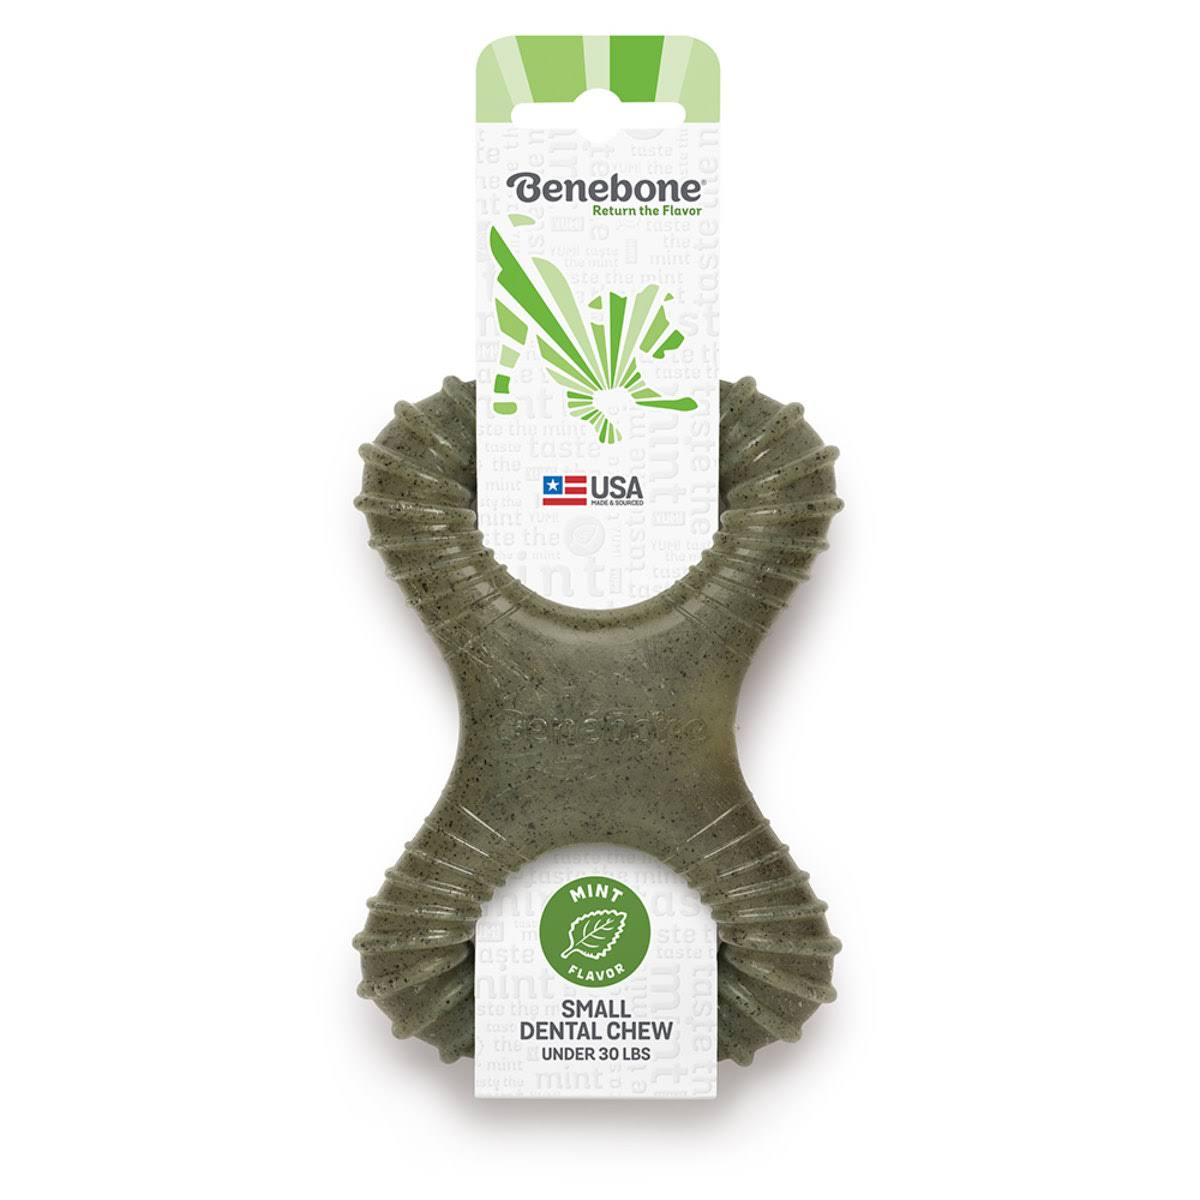 Benebone Mint Dental Chew Dog Toy, Small